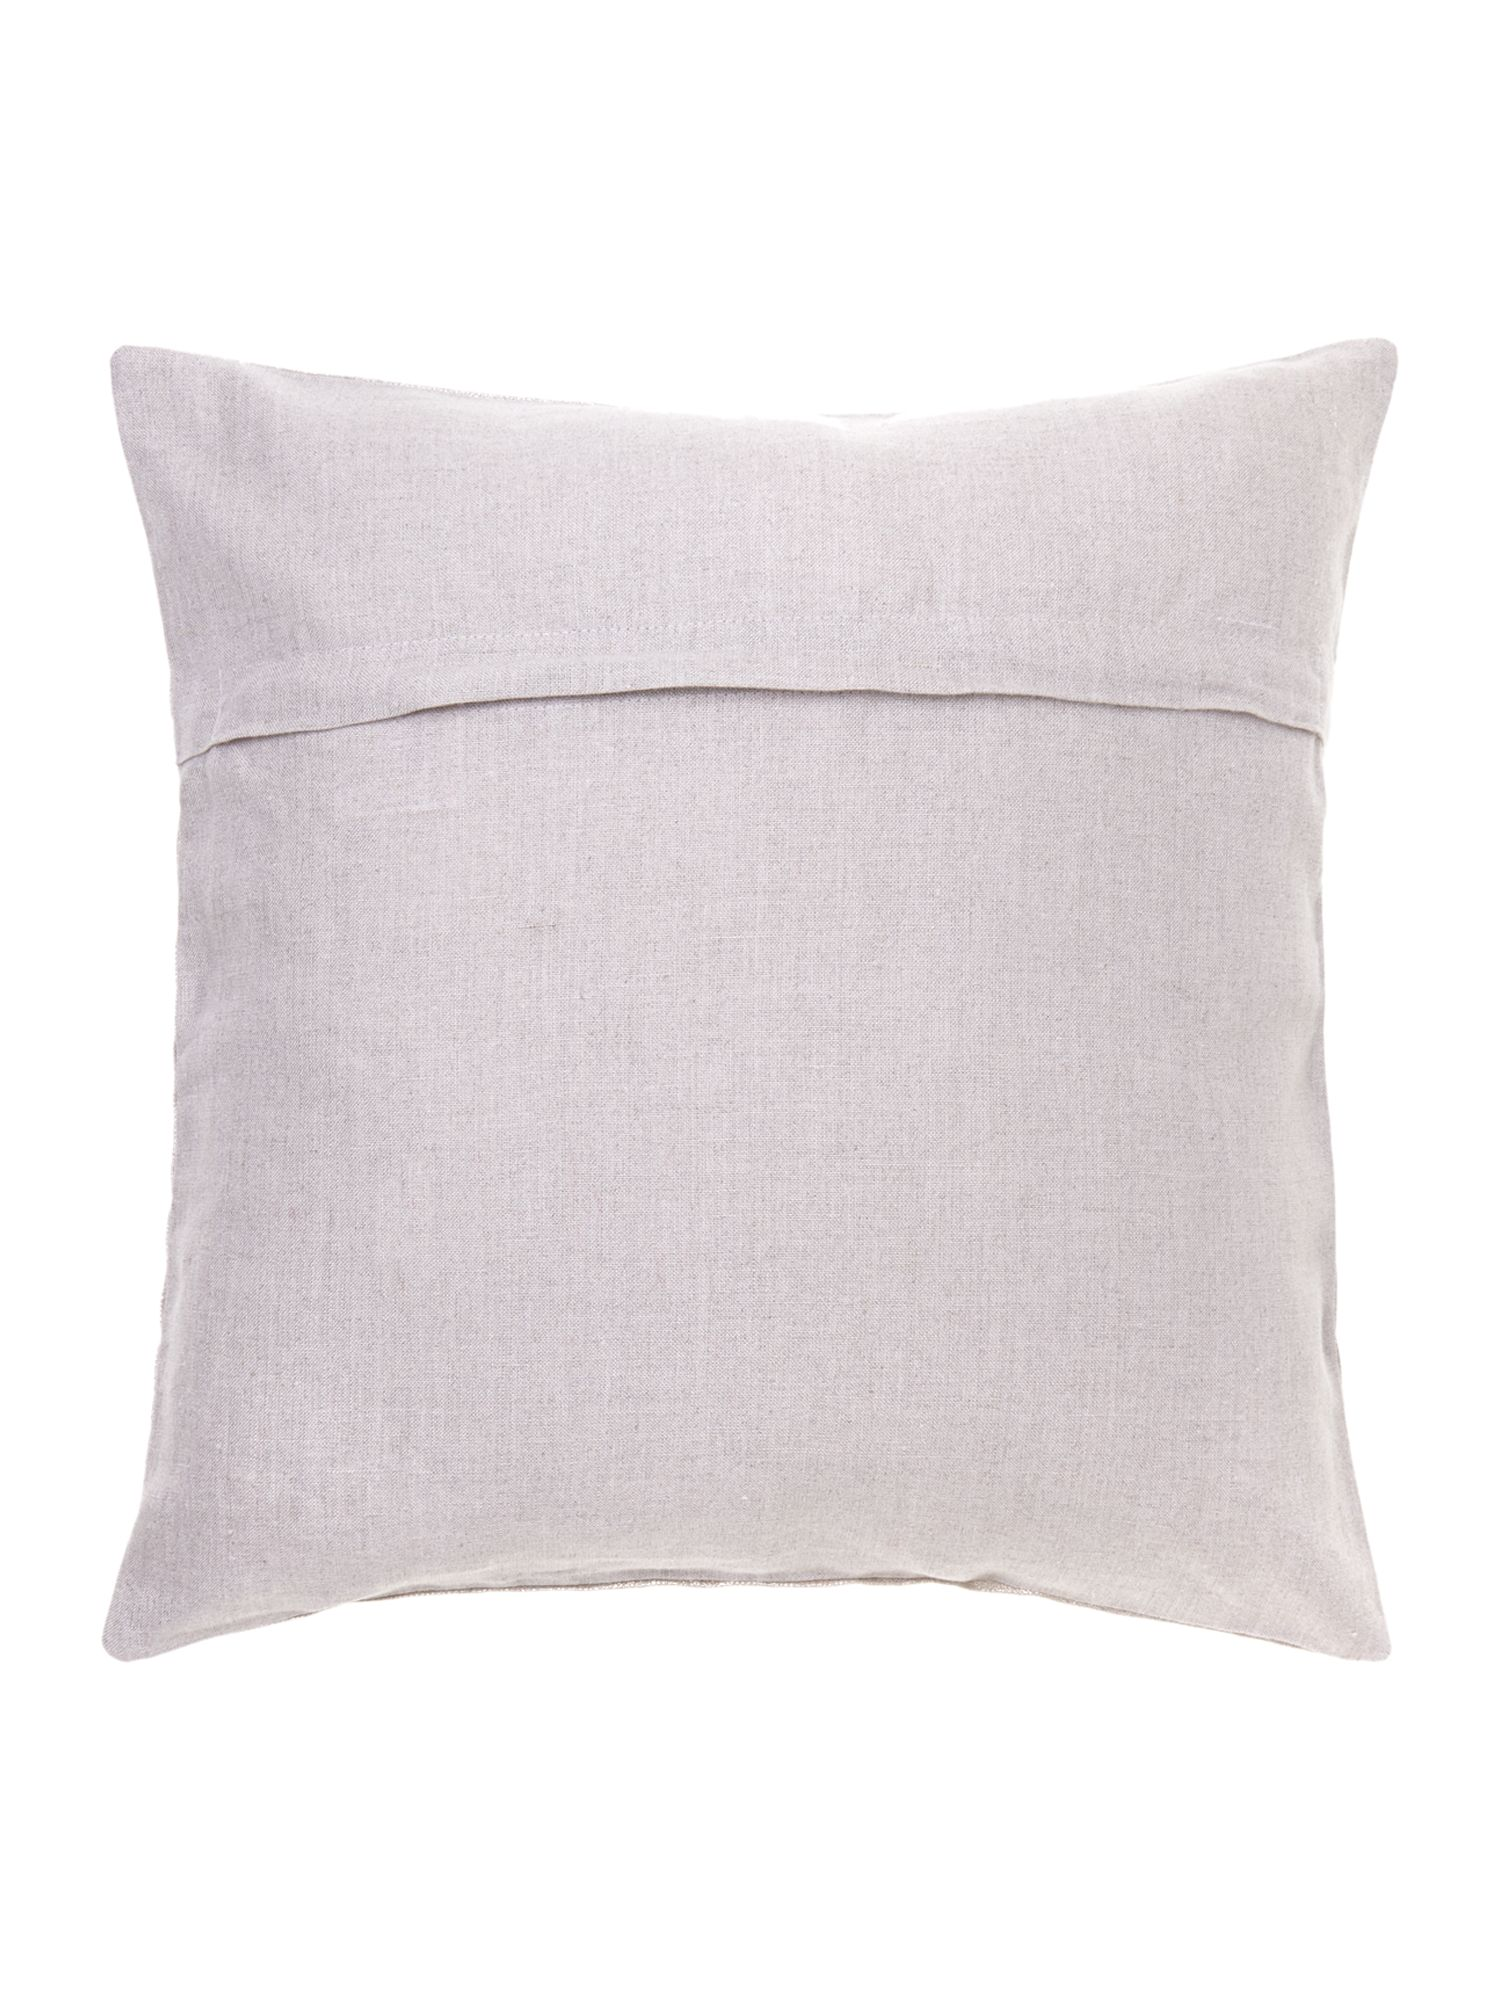 Gold effect linen cushion